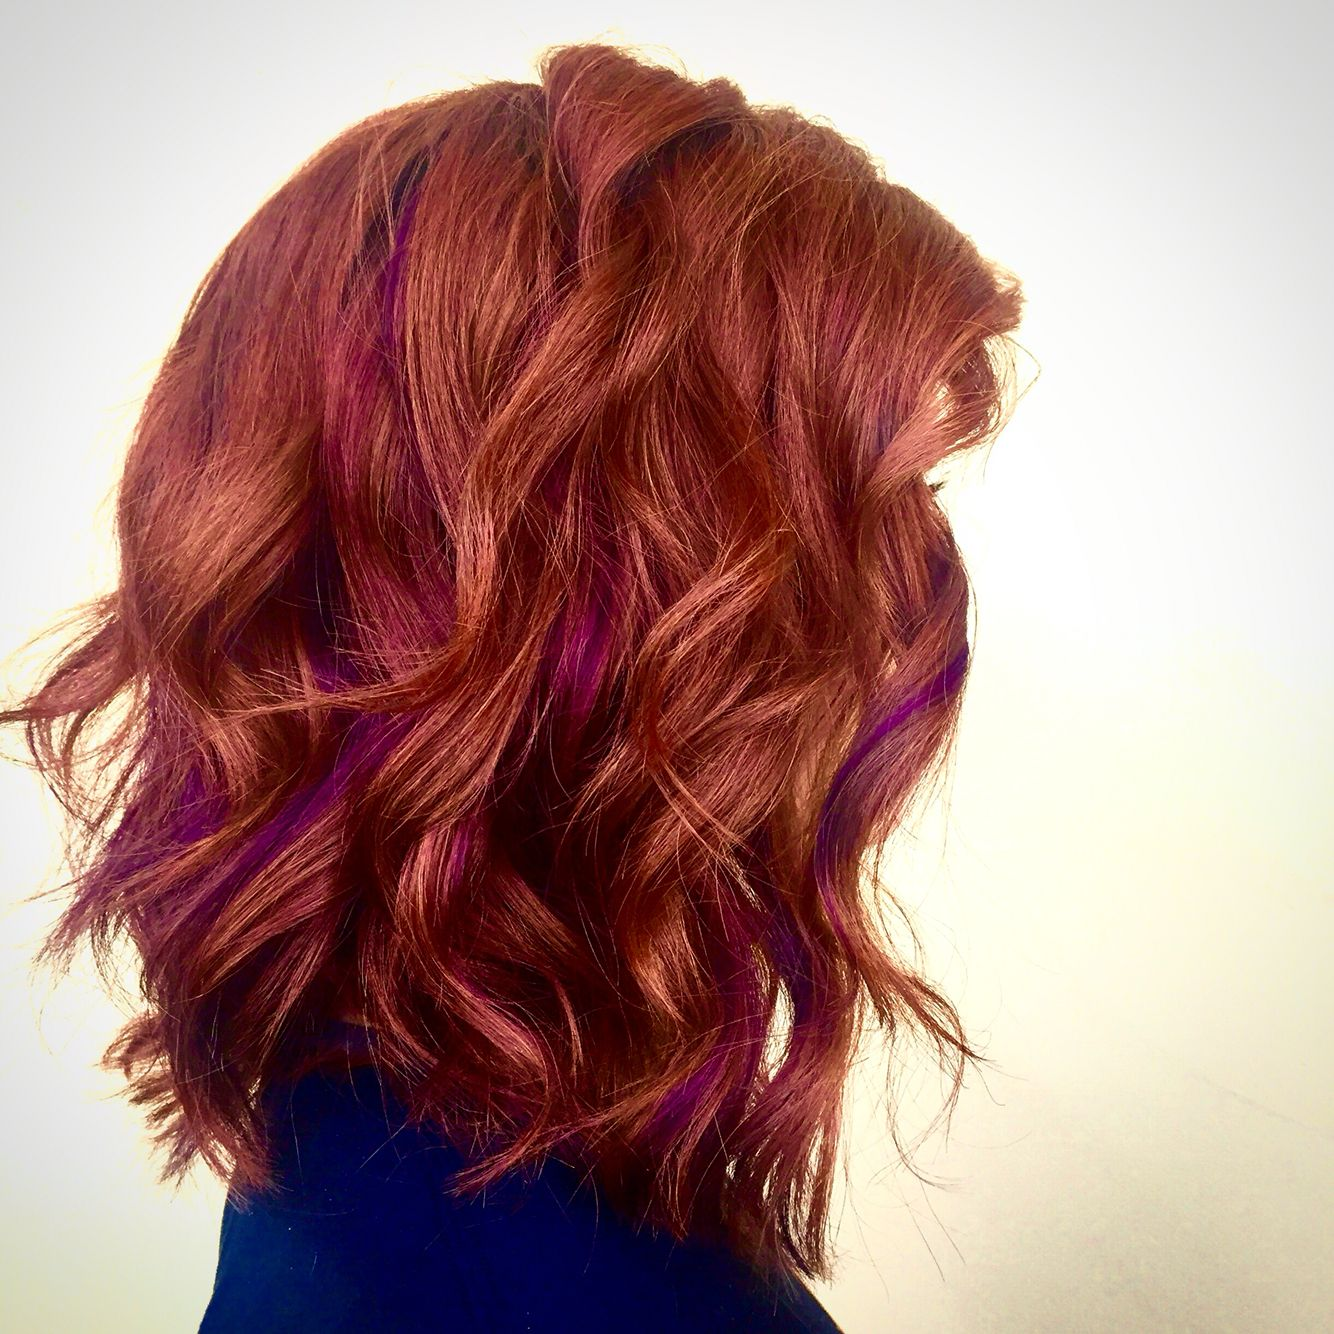 Red And Purple Hair Redhair Naturalred Purplehair Ginger Purple Hair Highlights Purple Hair Red Purple Hair